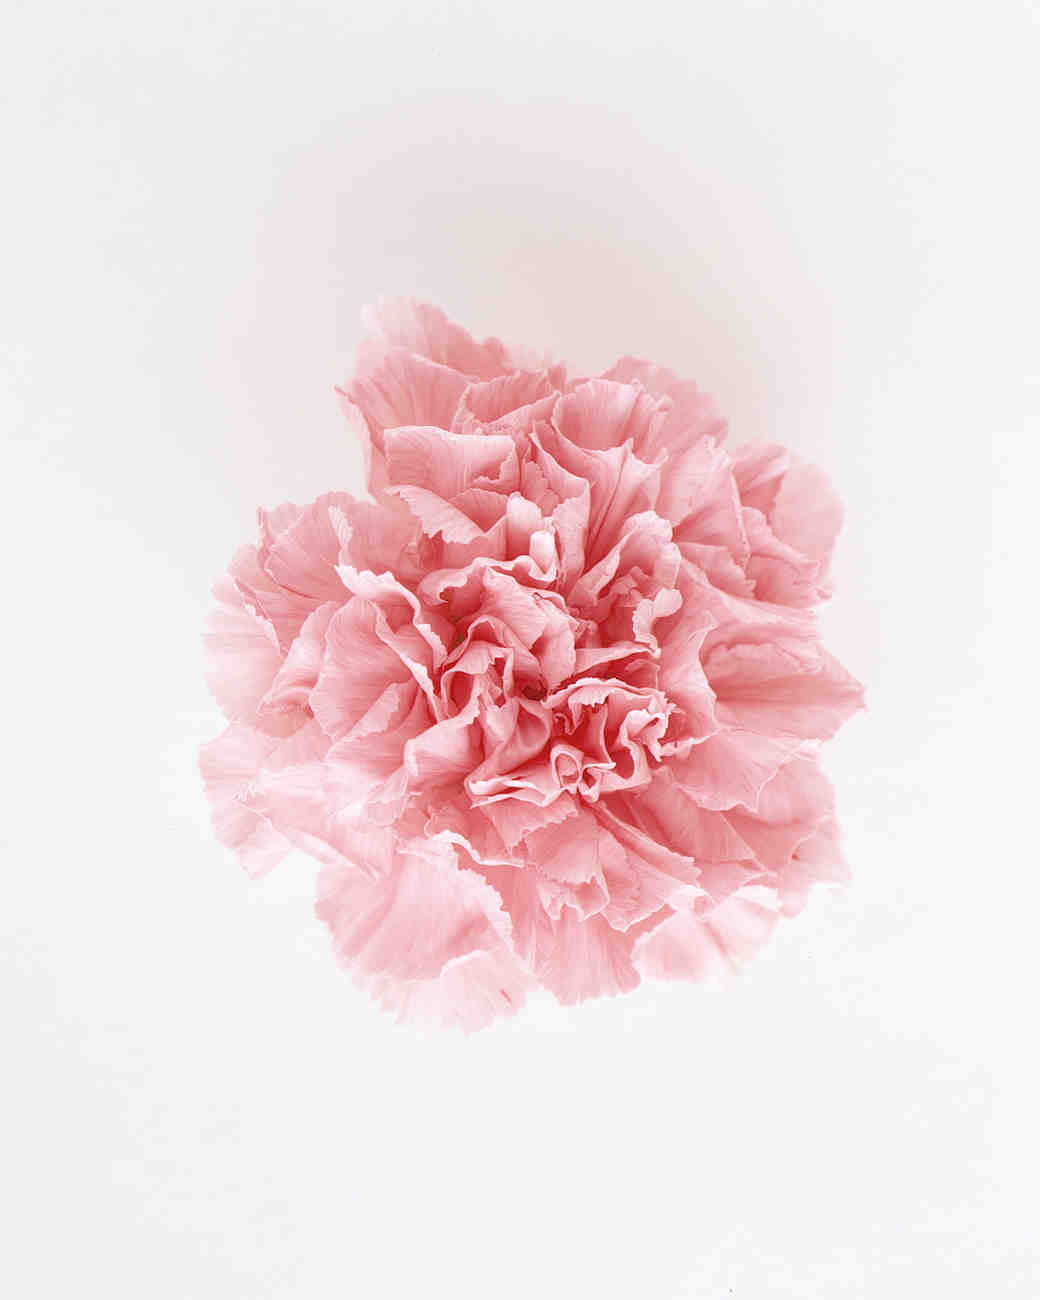 flower-glossary-carnation-pink-a98432-0415.jpg